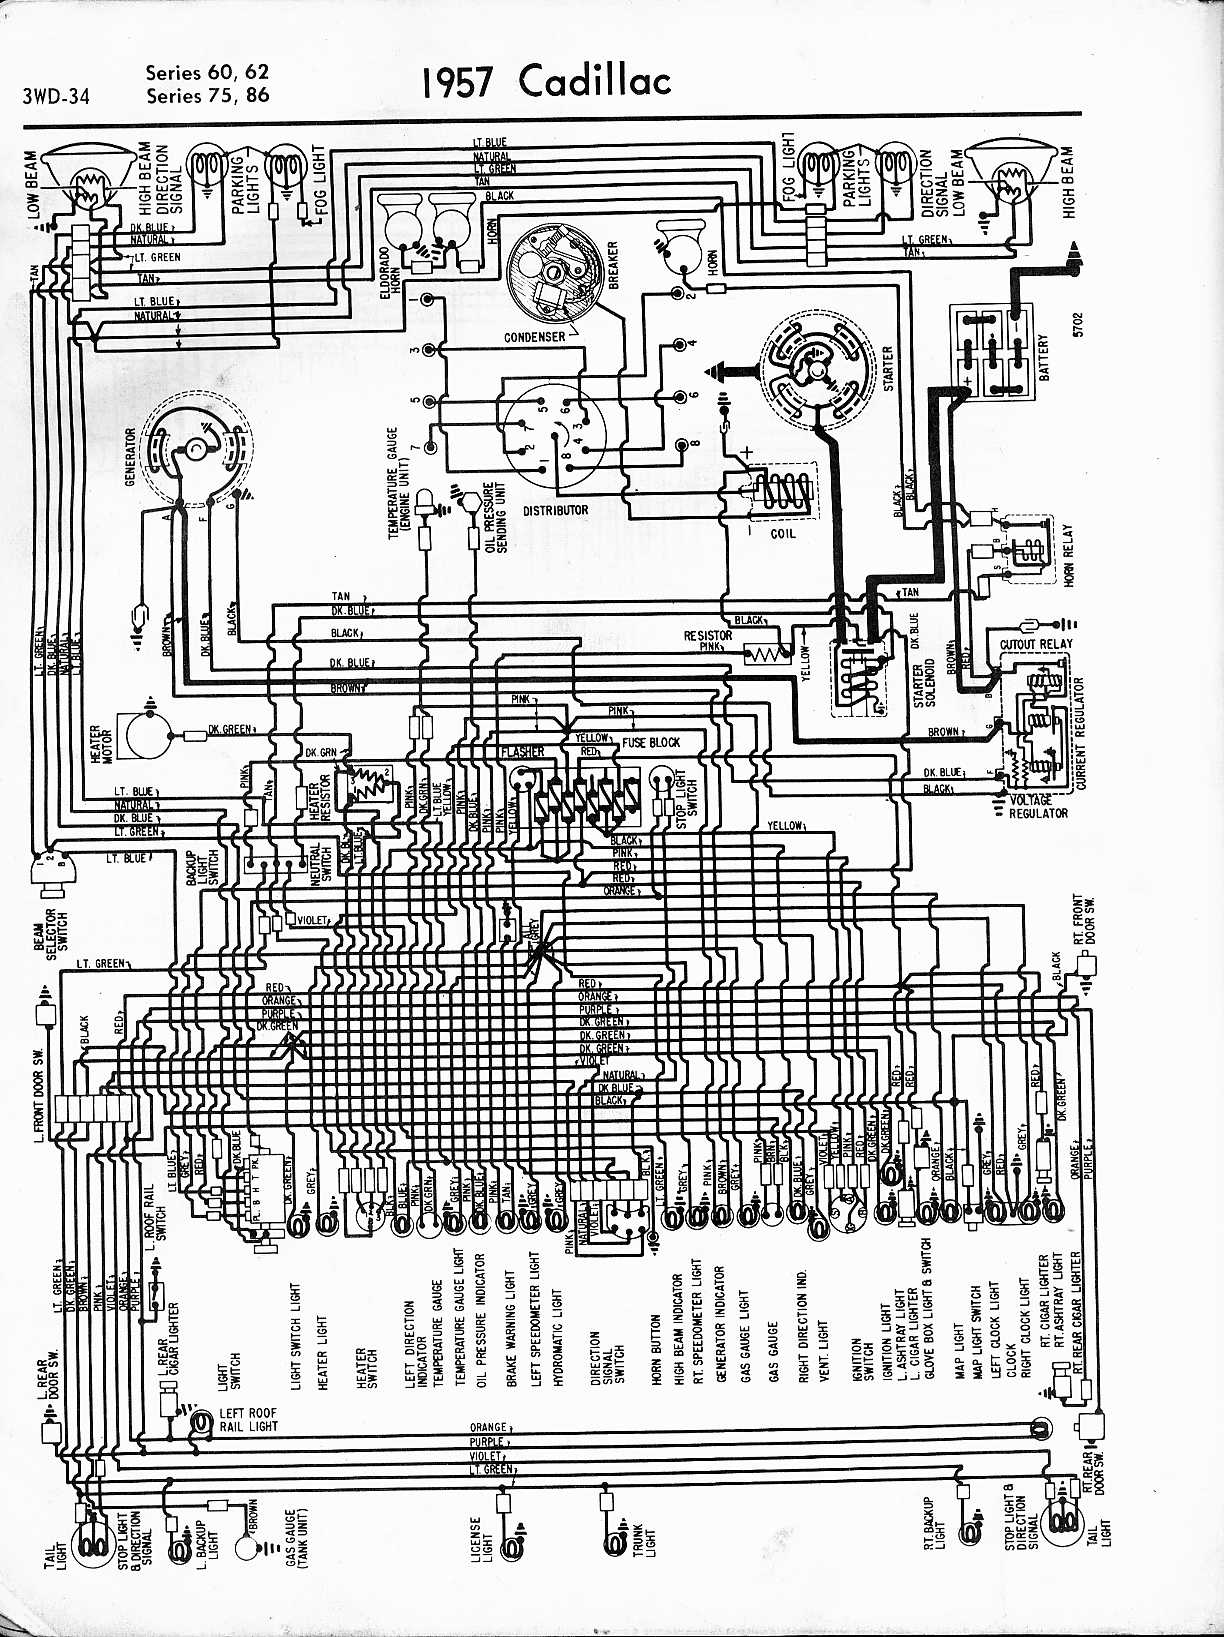 MWireCadi65_3WD 034 cadillac wiring diagrams 1957 1965 1984 Seville at n-0.co